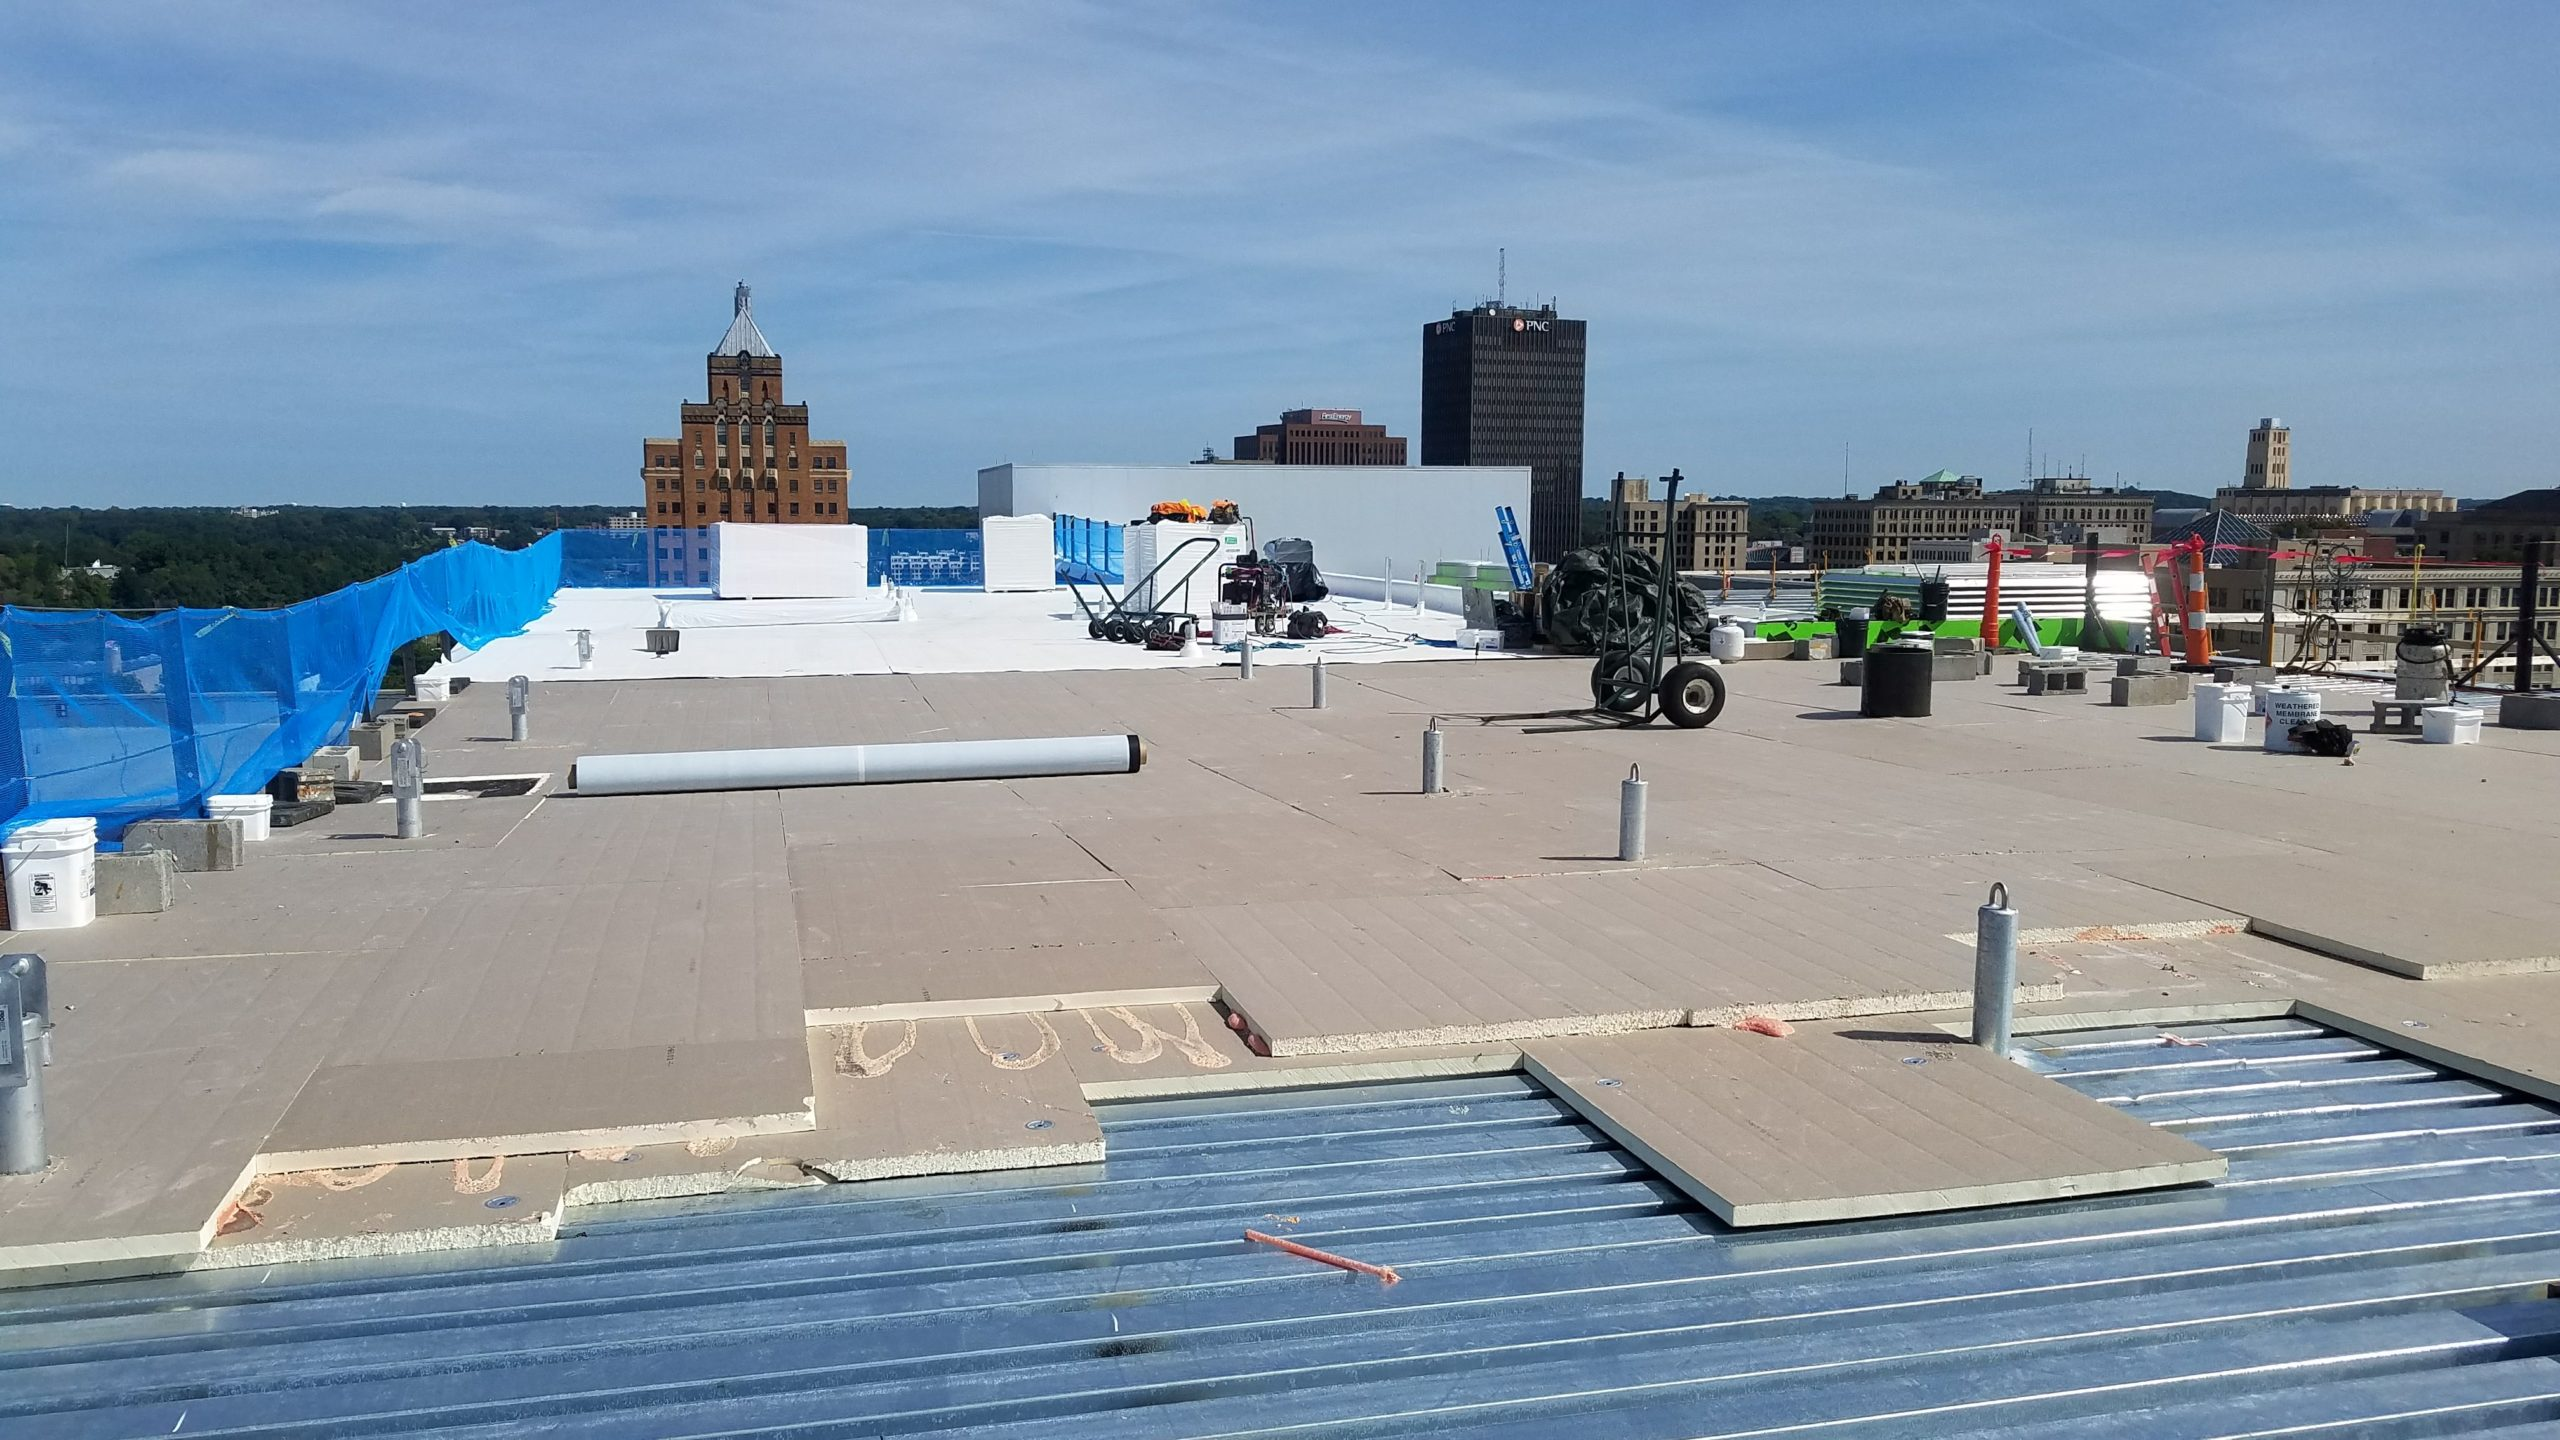 Akron Childrens Hospital - Considine Building - Tycor Roofing